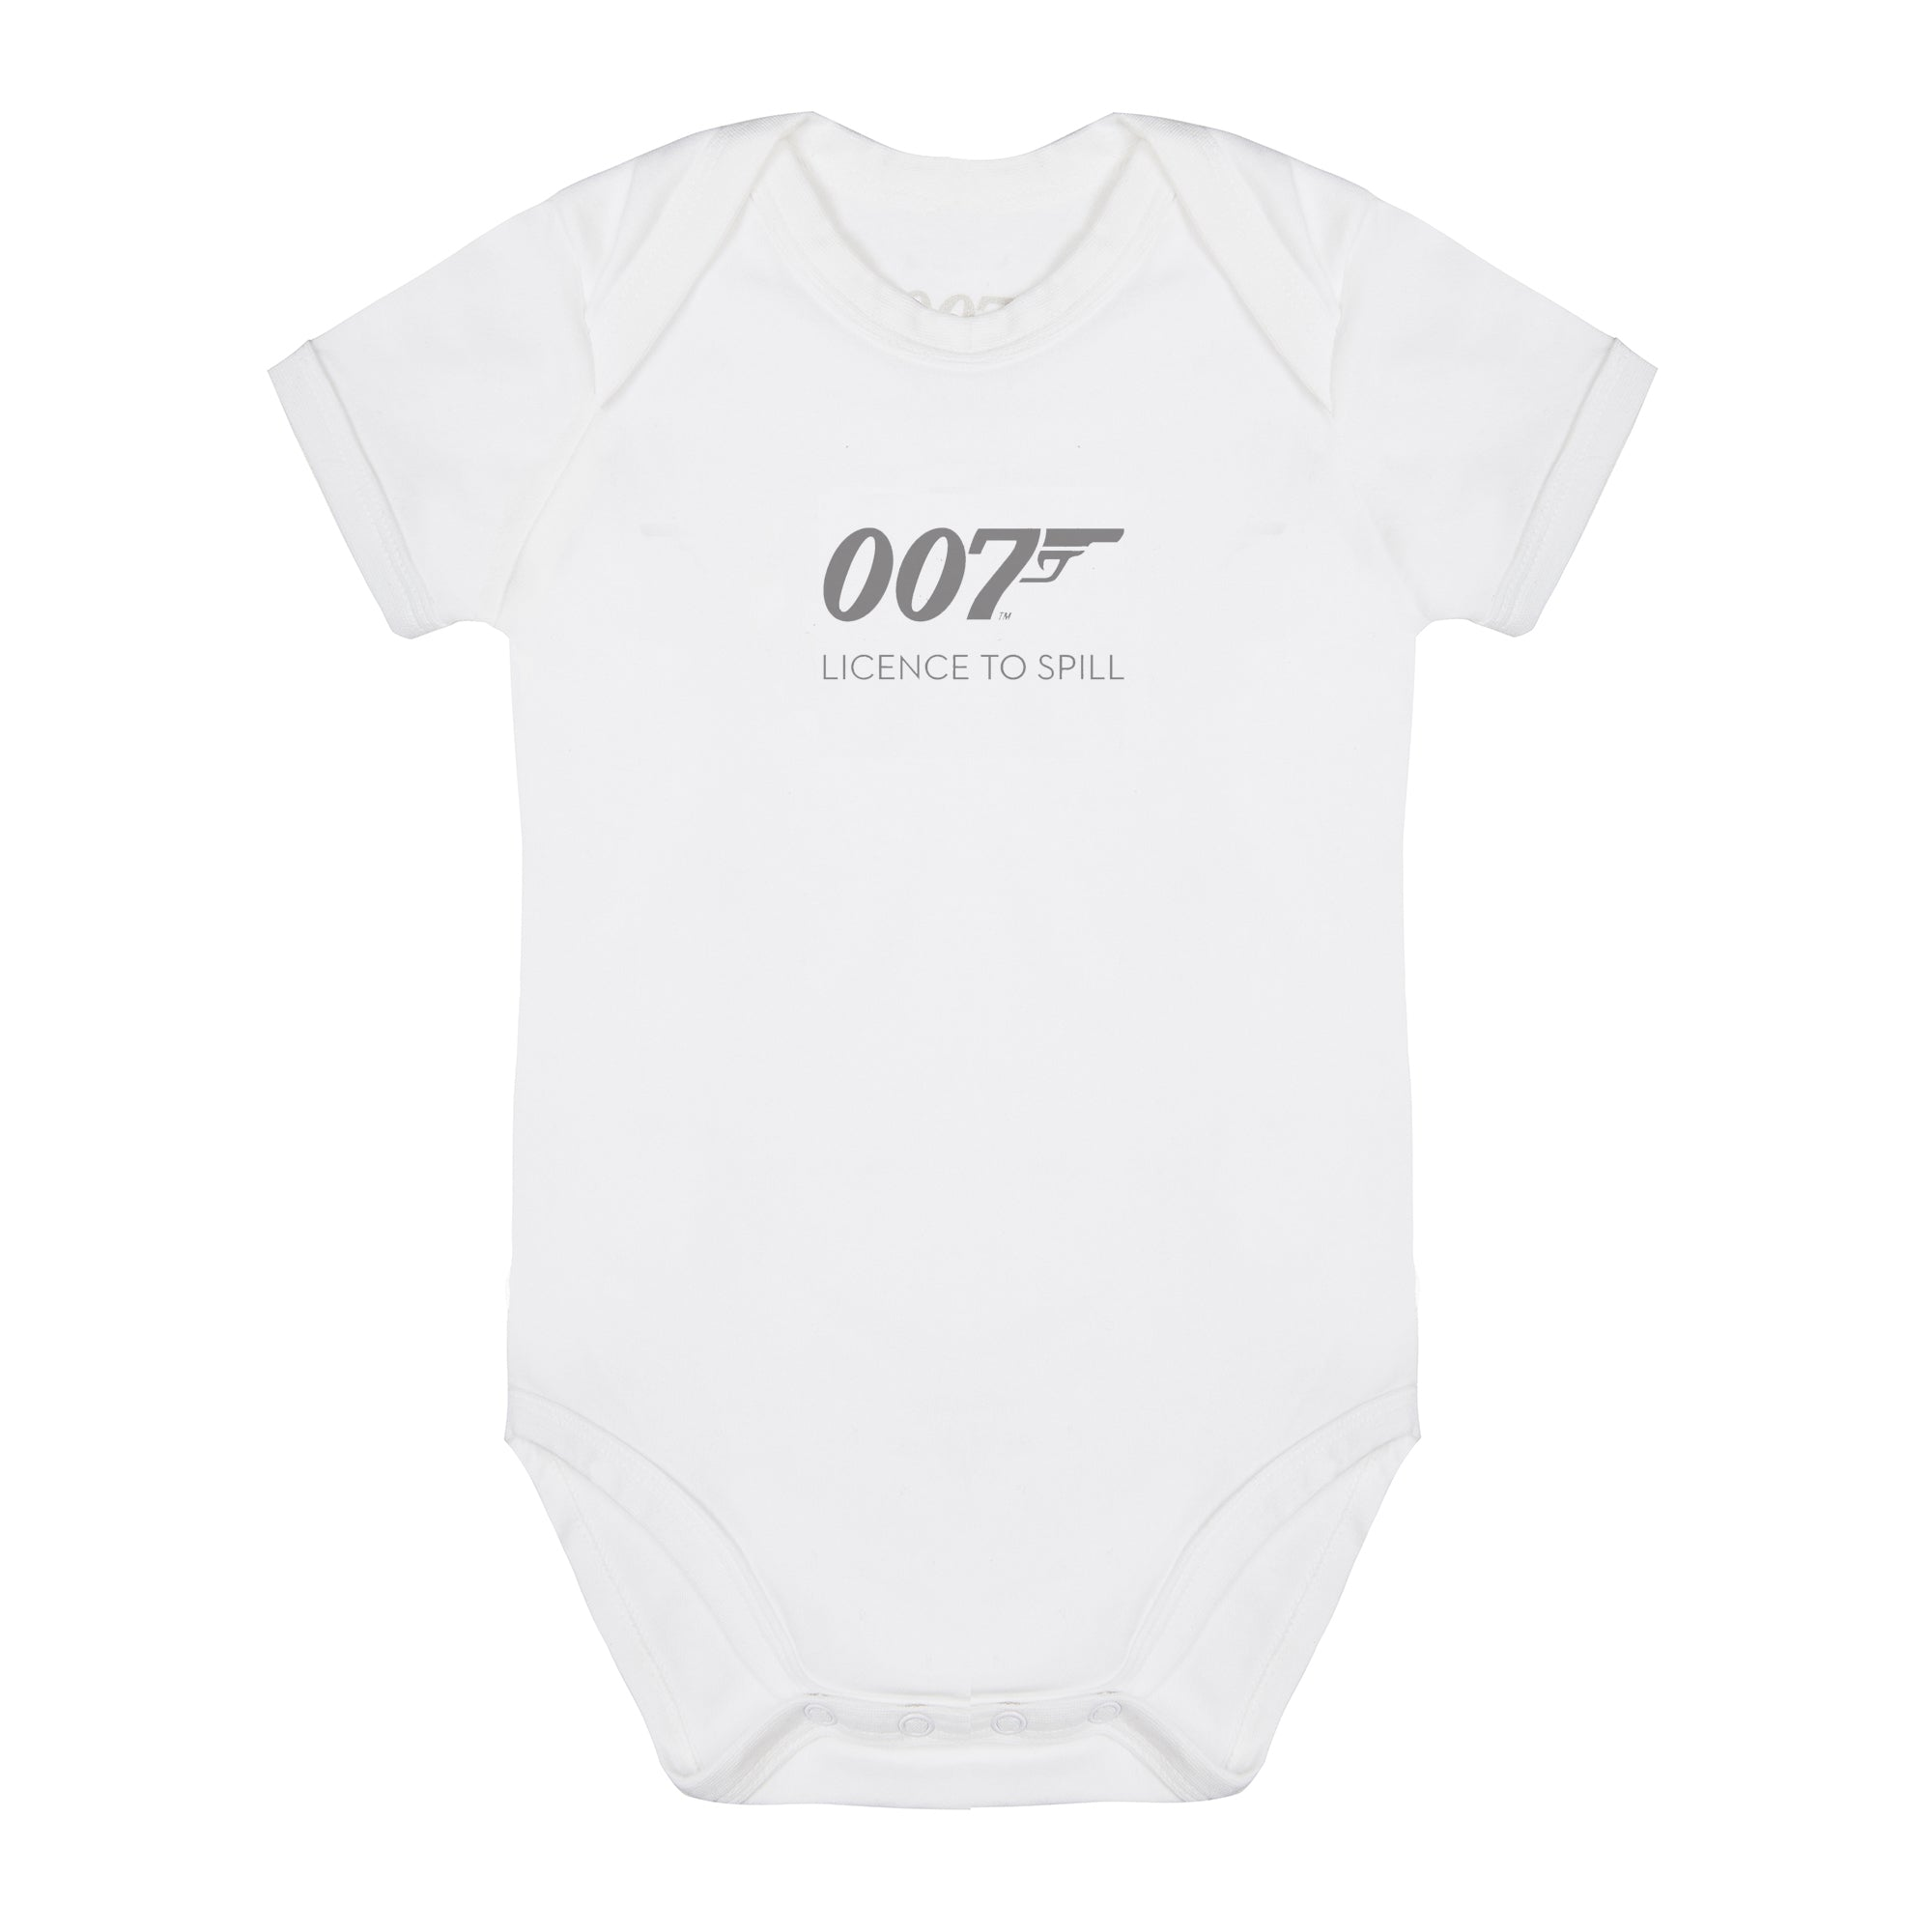 007 Licence To Spill White Baby Bodysuit